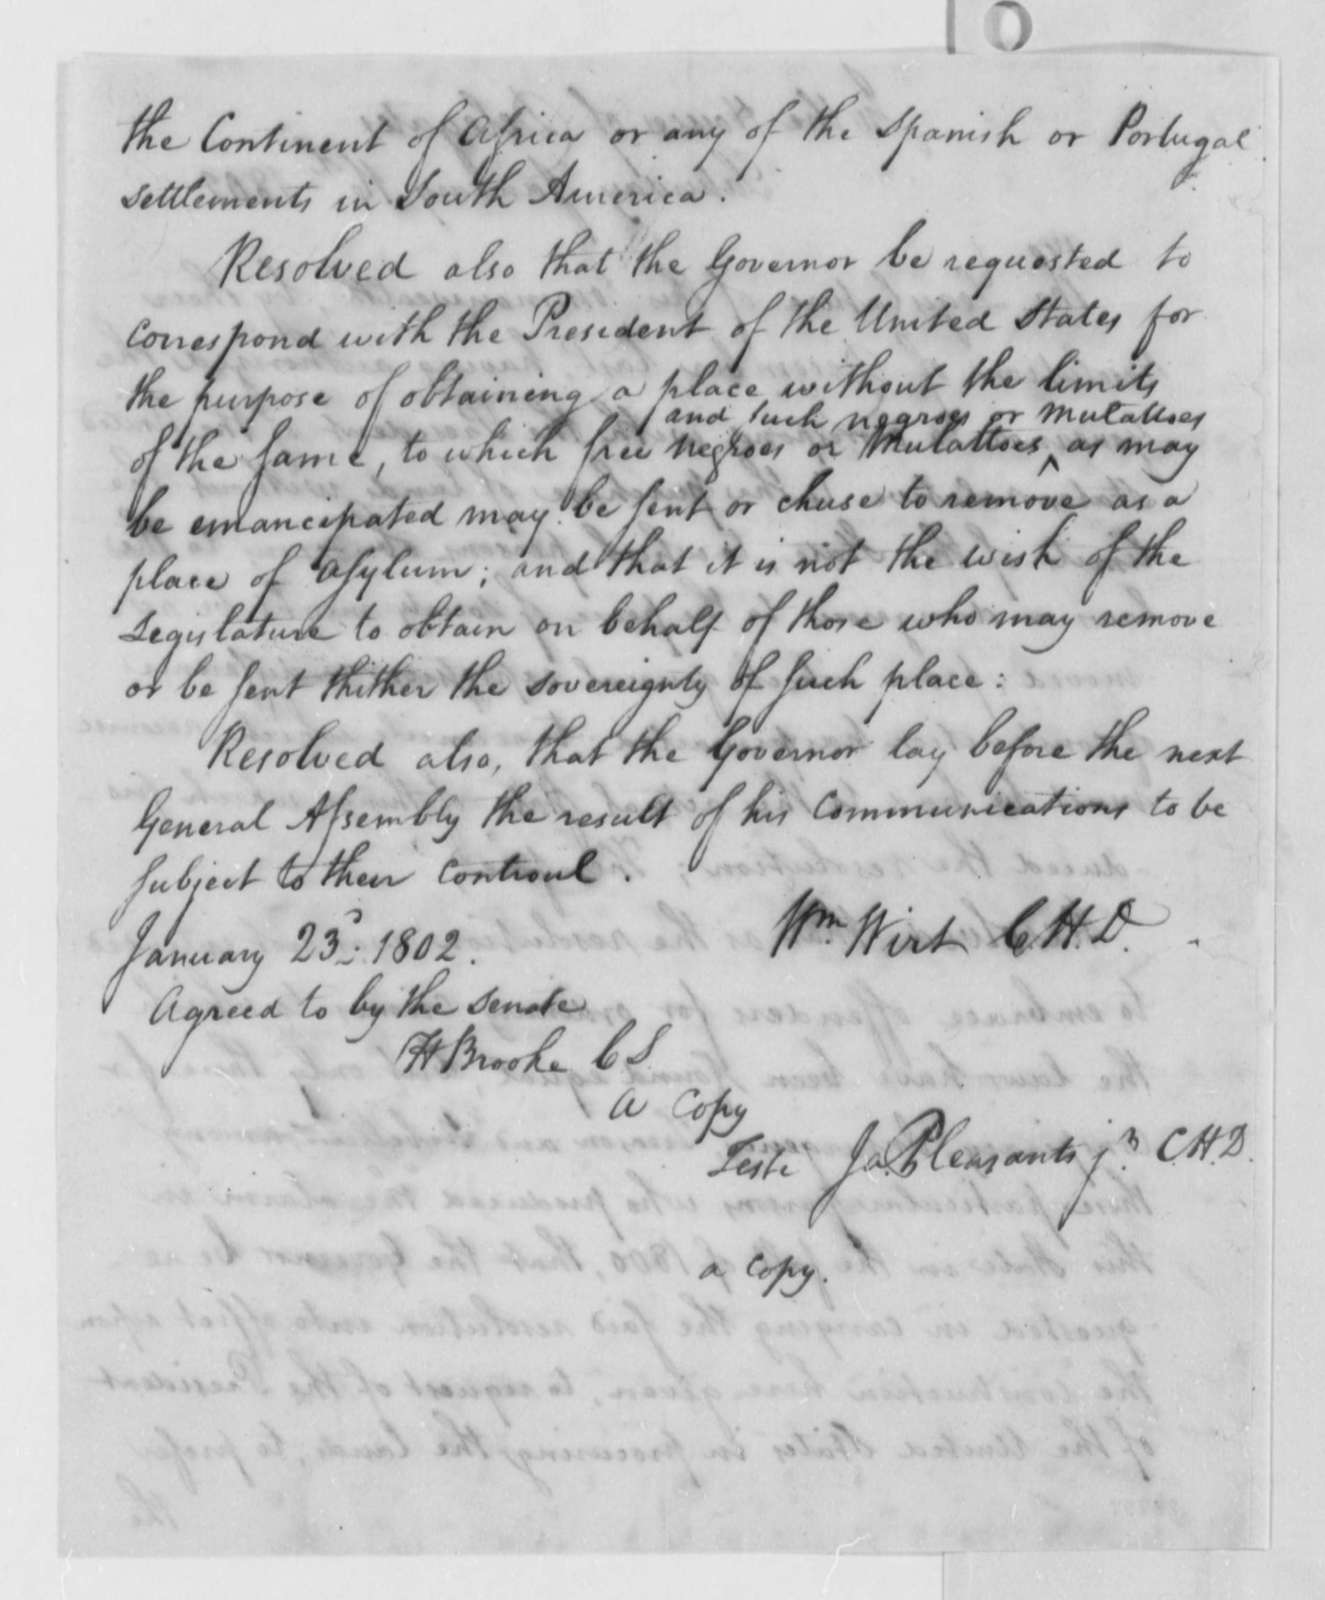 Virginia House of Delegates, January 16, 1802, Copy of Resolution